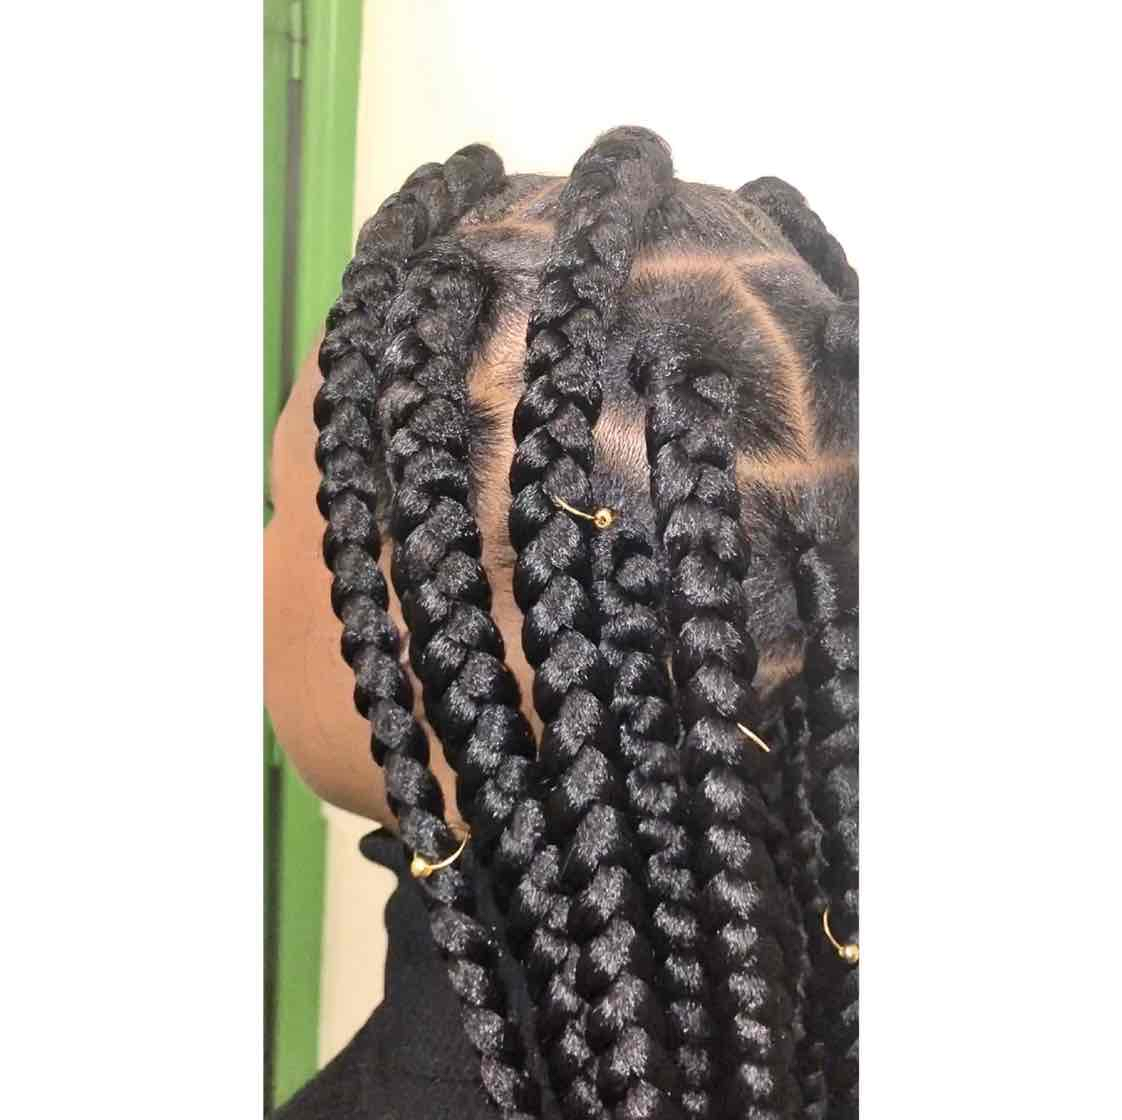 salon de coiffure afro tresse tresses box braids crochet braids vanilles tissages paris 75 77 78 91 92 93 94 95 VZWXNNDO